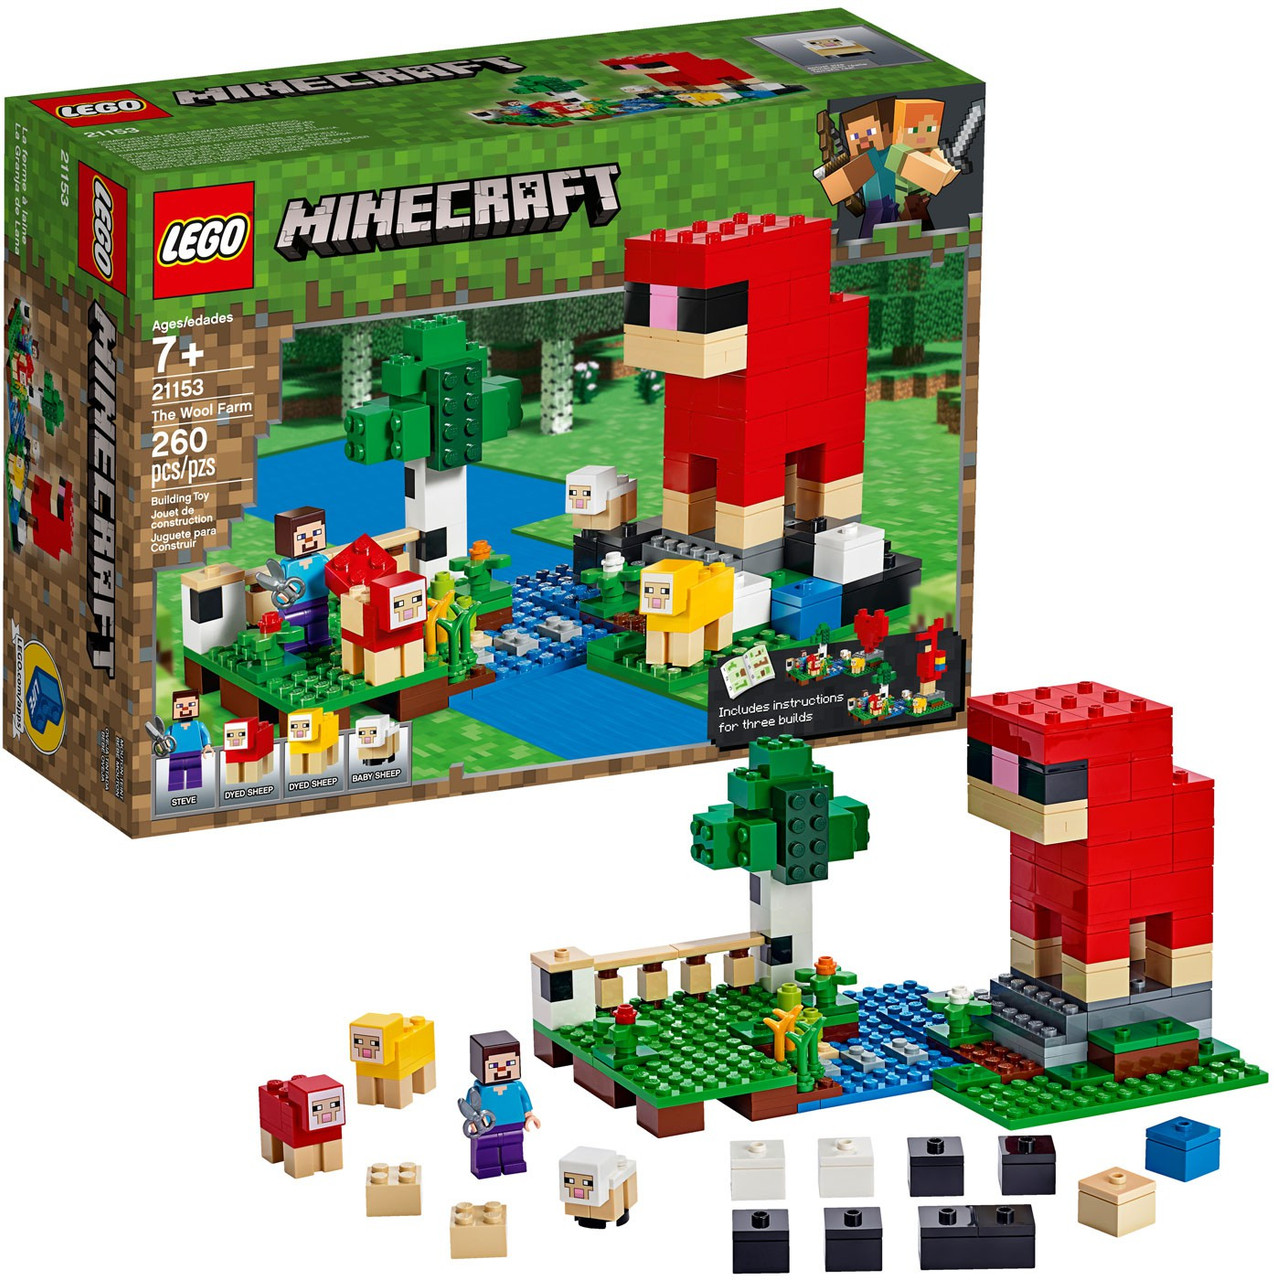 Lego Minecraft The Wool Farm Set 21153